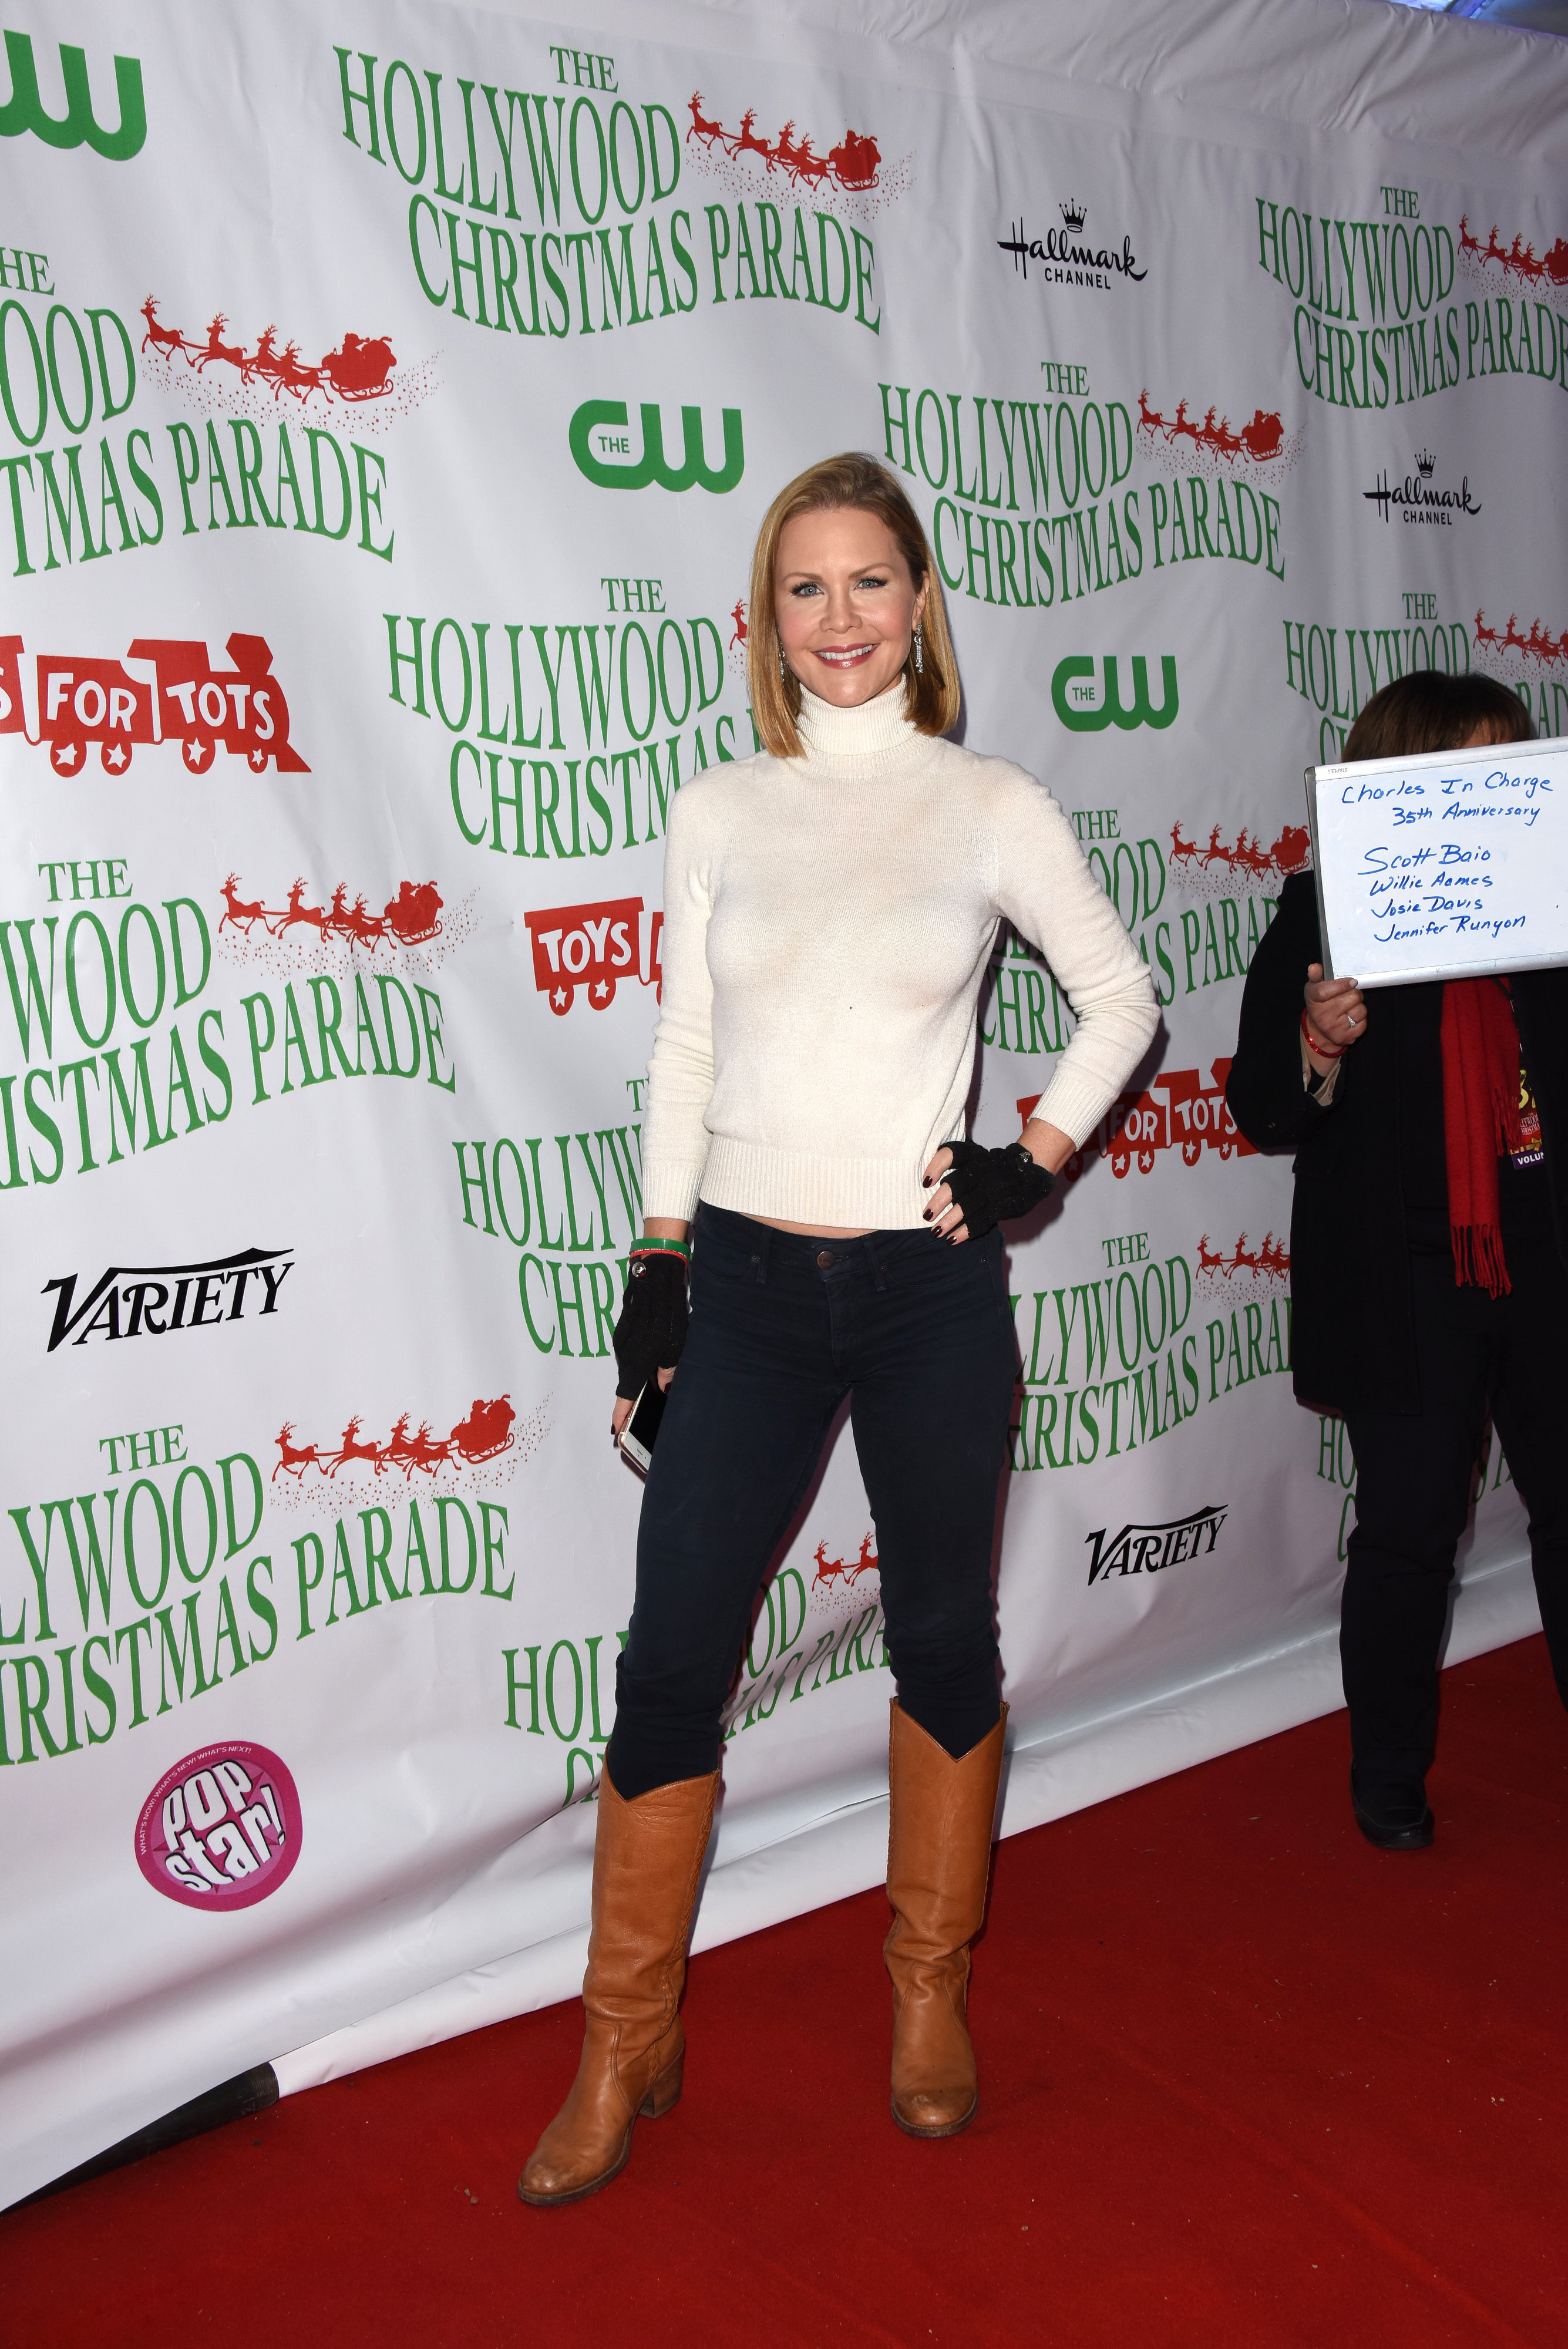 Josie Davis attends the 88th annual Hollywood Christmas Parade